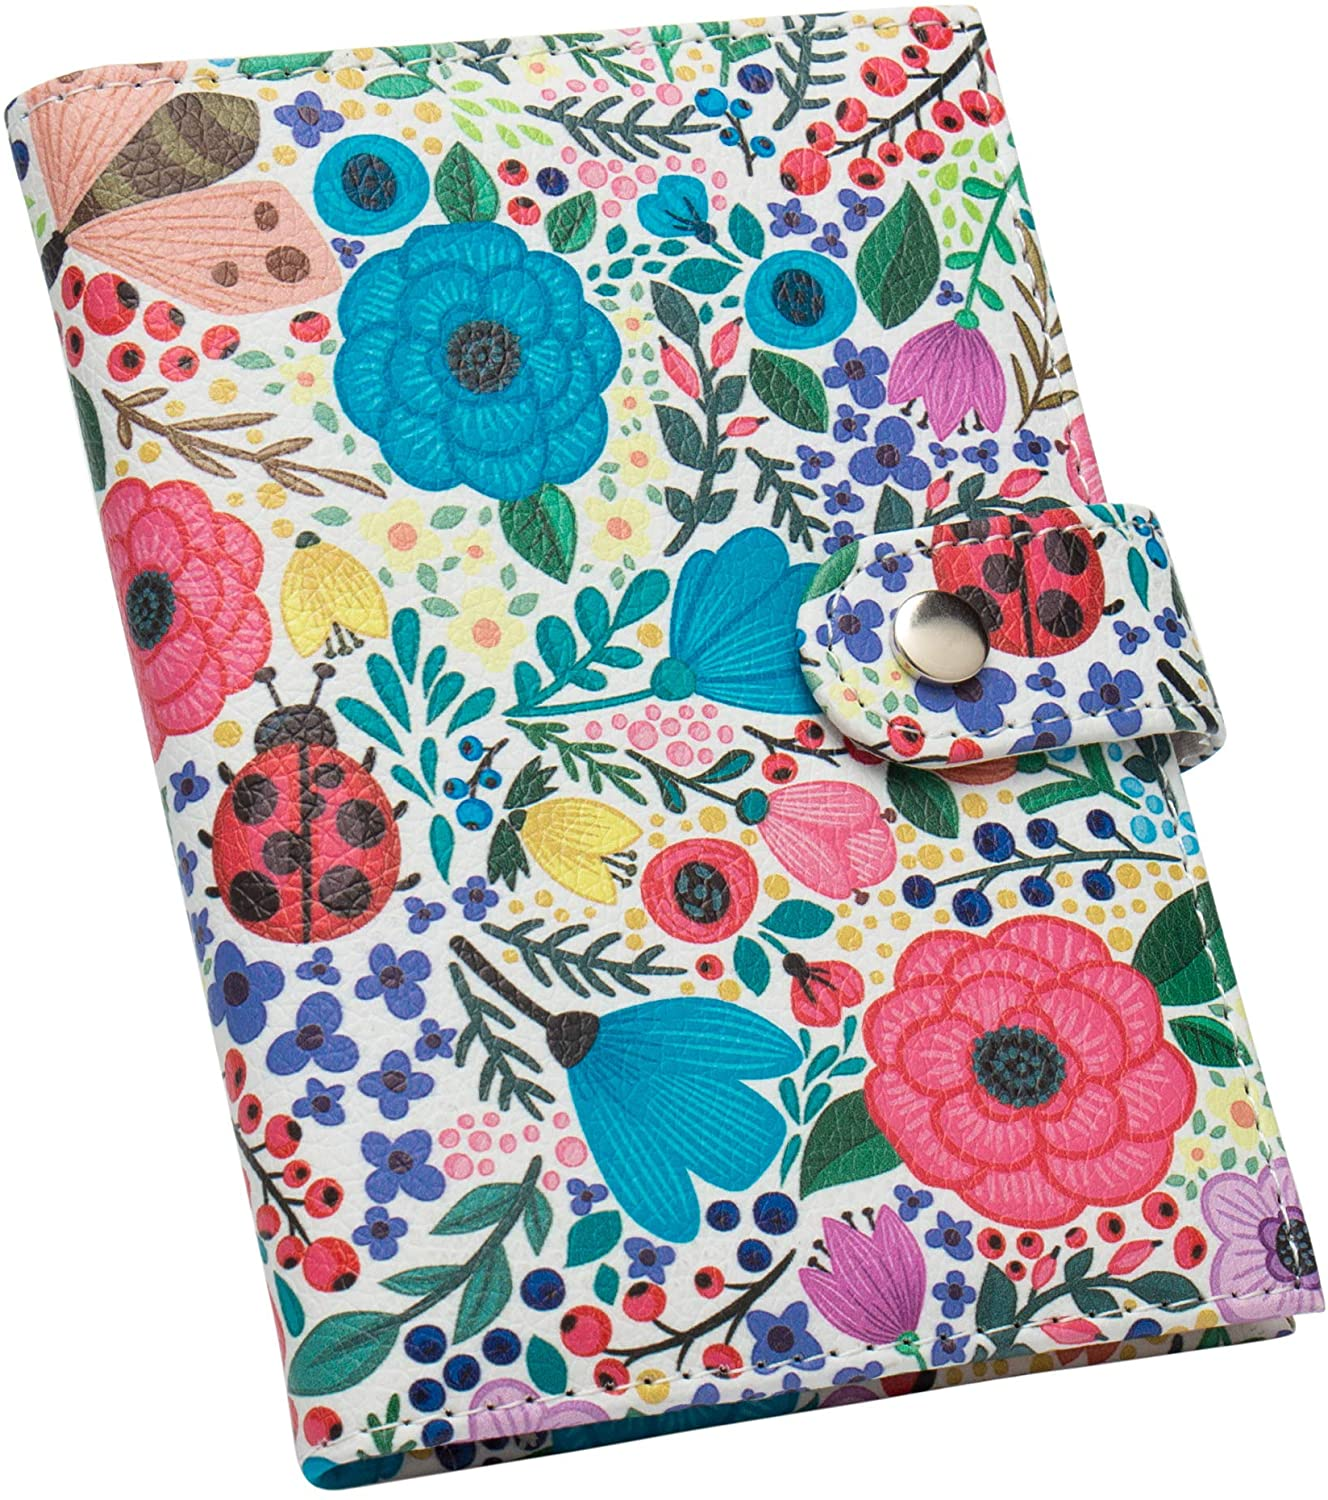 ZONGSHU Passport Holder Cover Wallet, Colorful Flower Patten Travel Luggage Passport Wallet with PU Leather